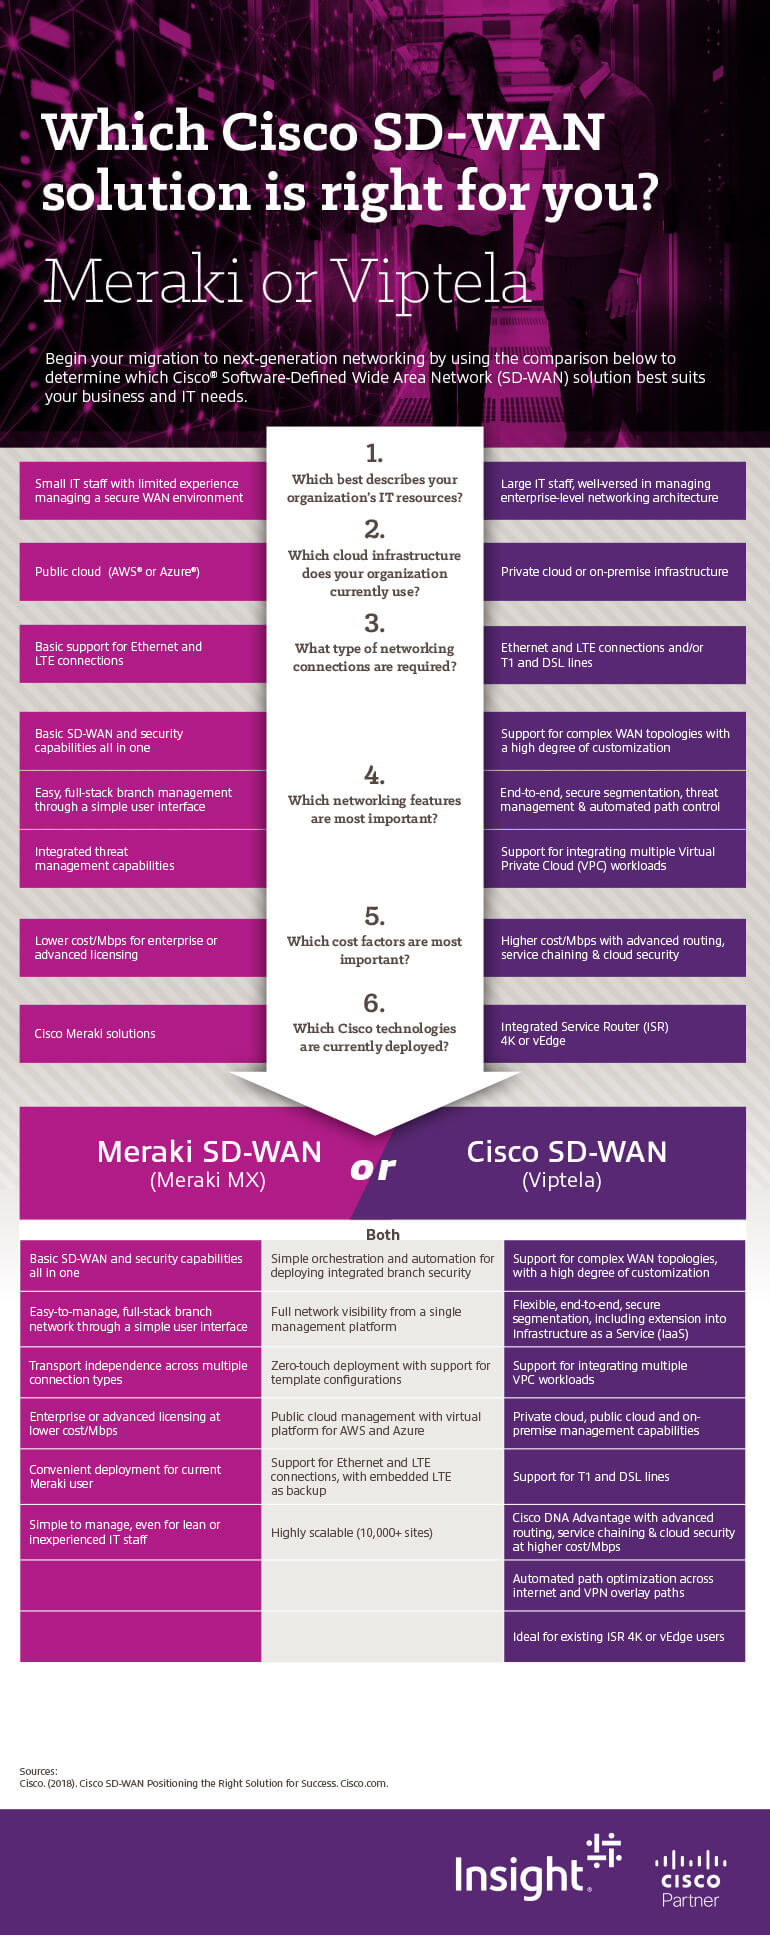 Which Cisco SD-WAN solution is right for you? infographic. Meraki SD-WAN or Cisco SD-WAN